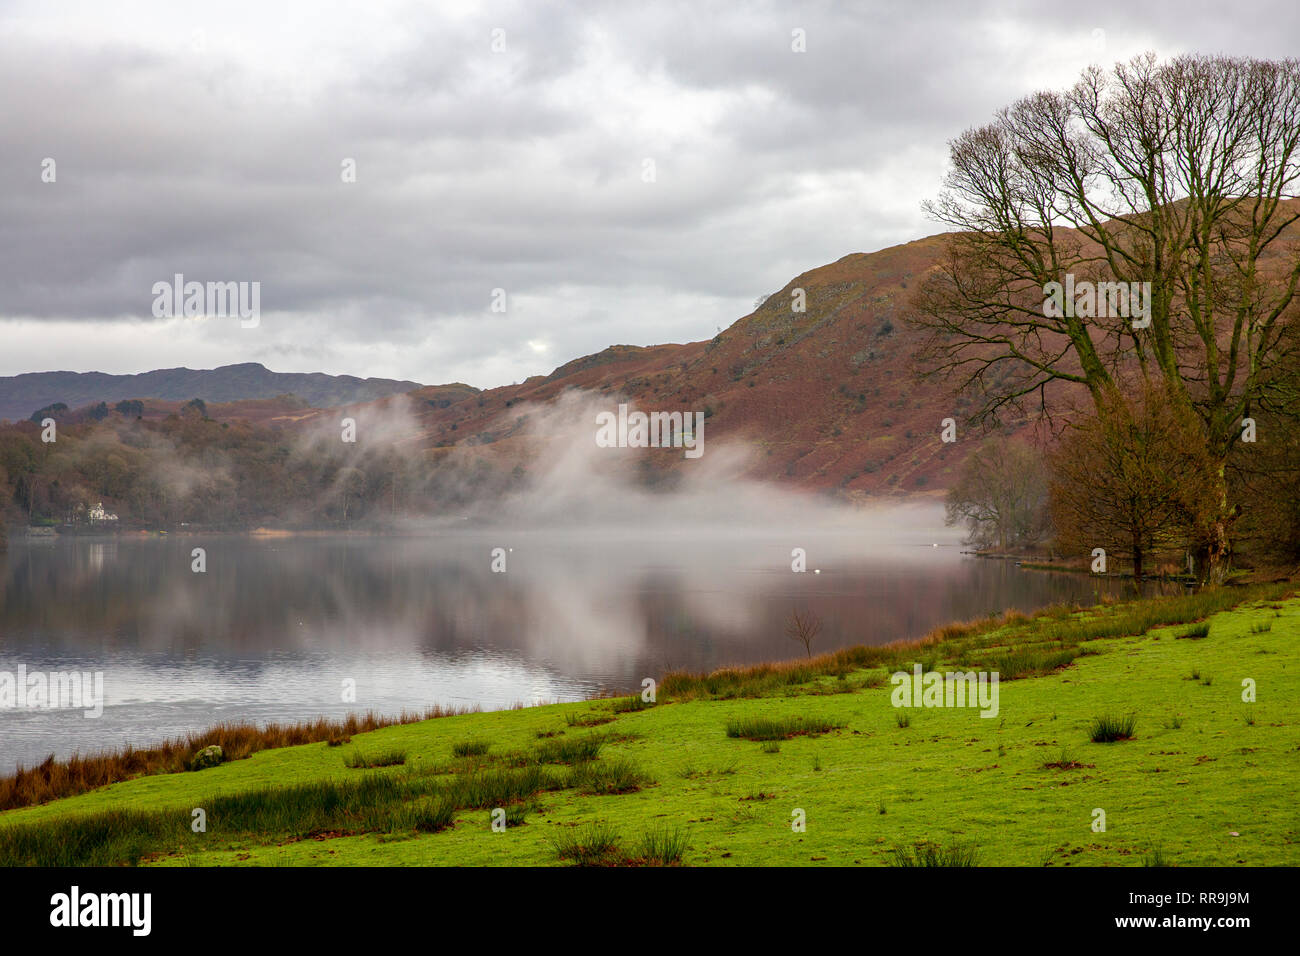 Early morning mist above Grasmere Lake, Grasmere in the Lake District national park,Cumbria,England Stock Photo